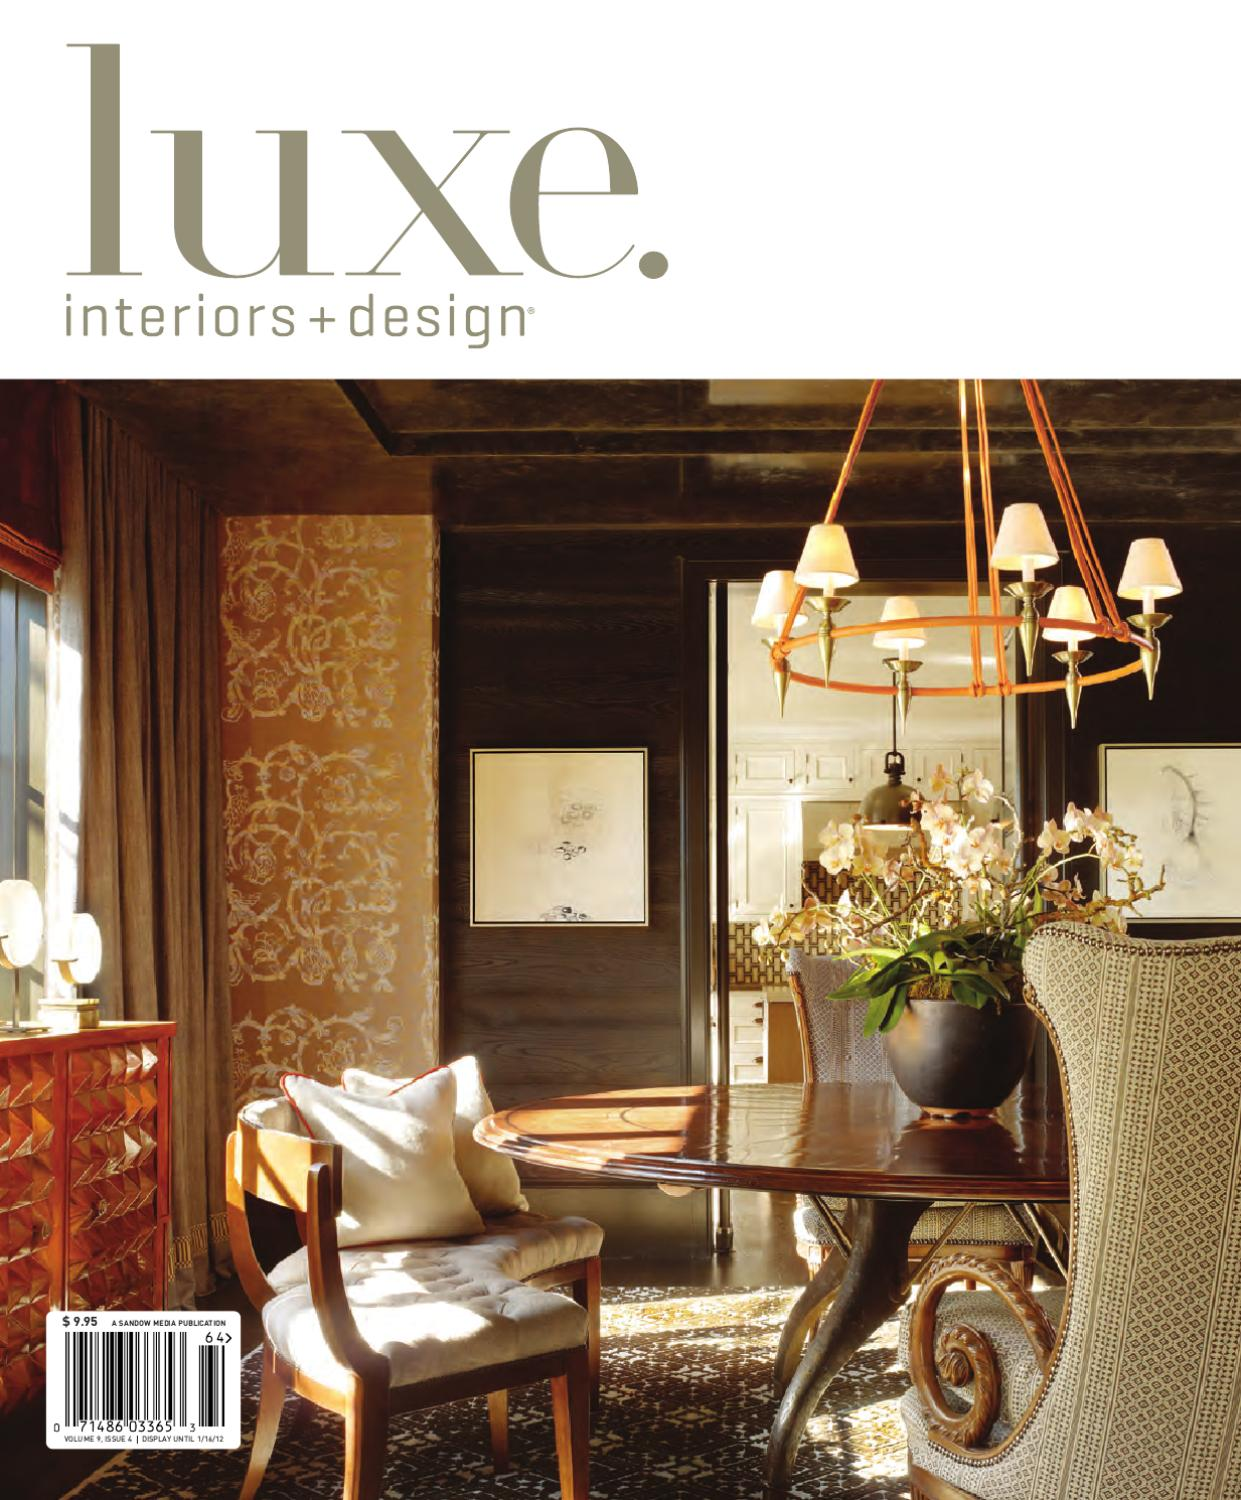 luxe interiors design national 10 by sandow media issuu. Black Bedroom Furniture Sets. Home Design Ideas